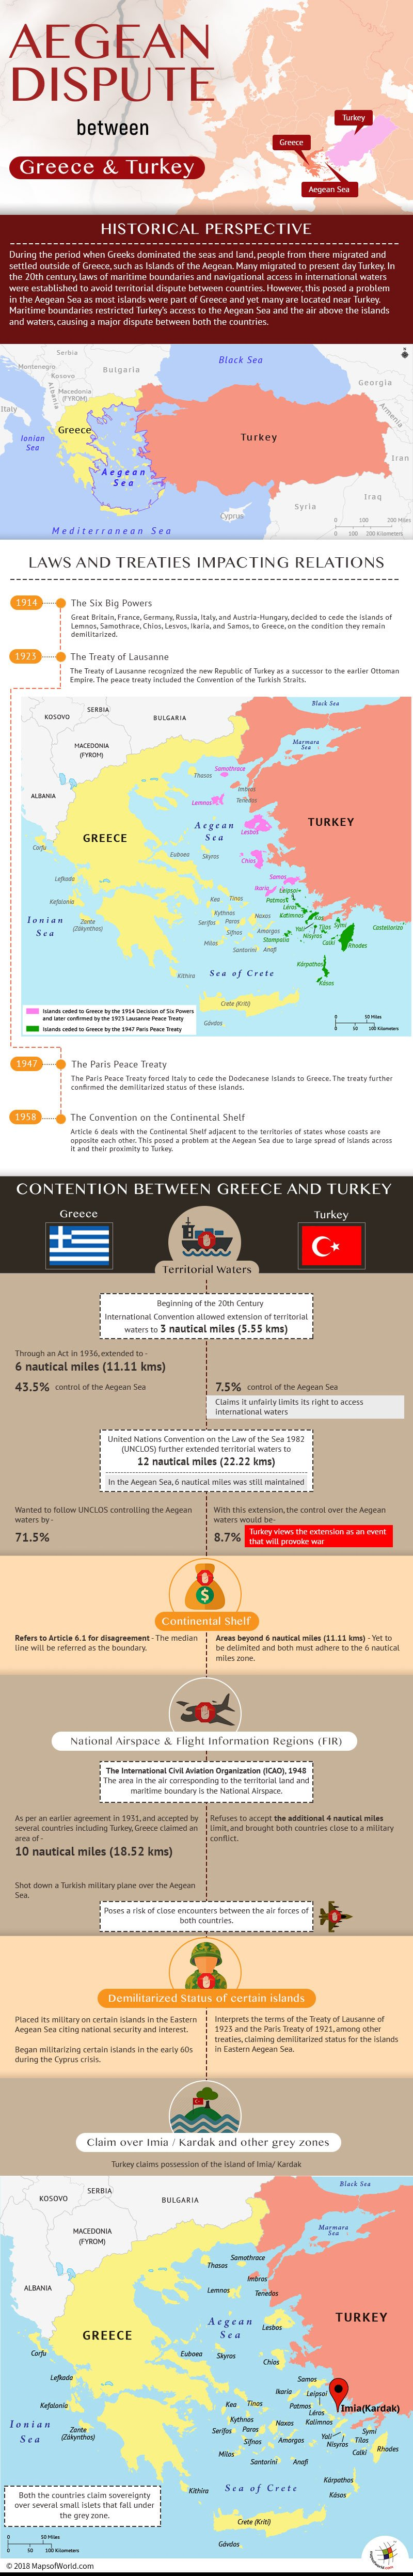 Infographic describing Aegean Dispute